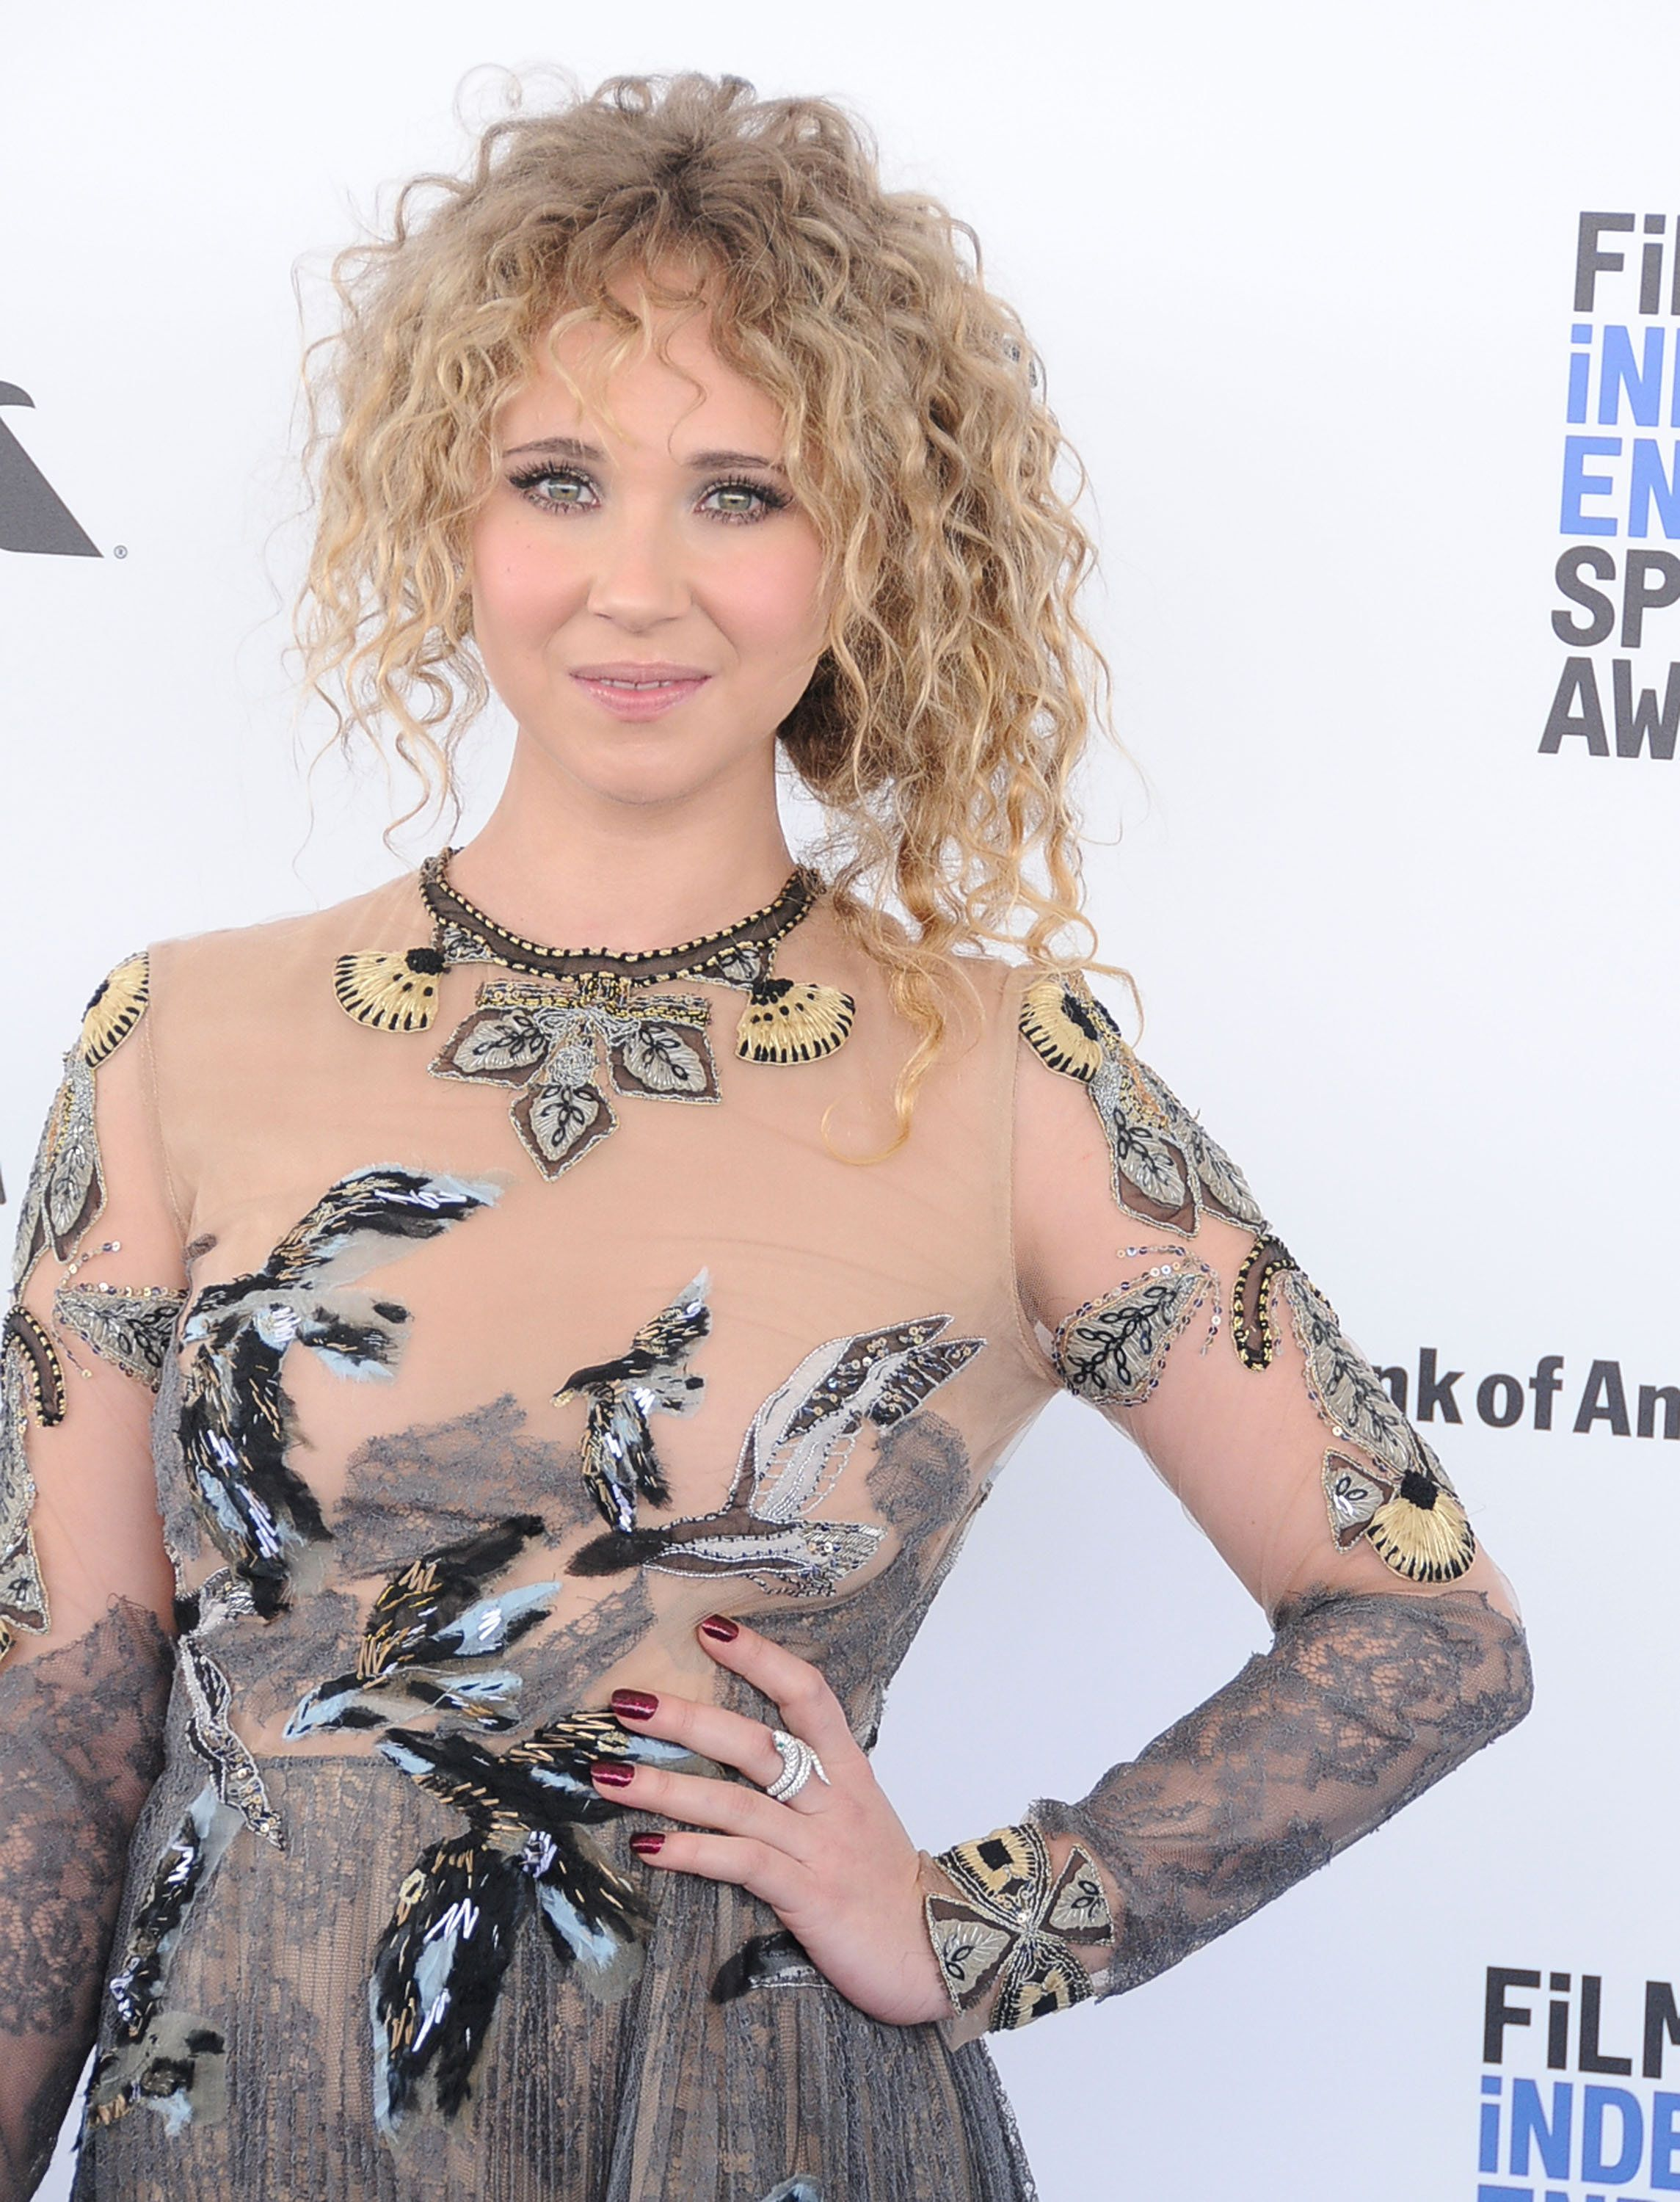 Actress Juno Temple attends the 2016 Film Independent Spirit Awards on February 27, 2016 in Santa Monica, California.